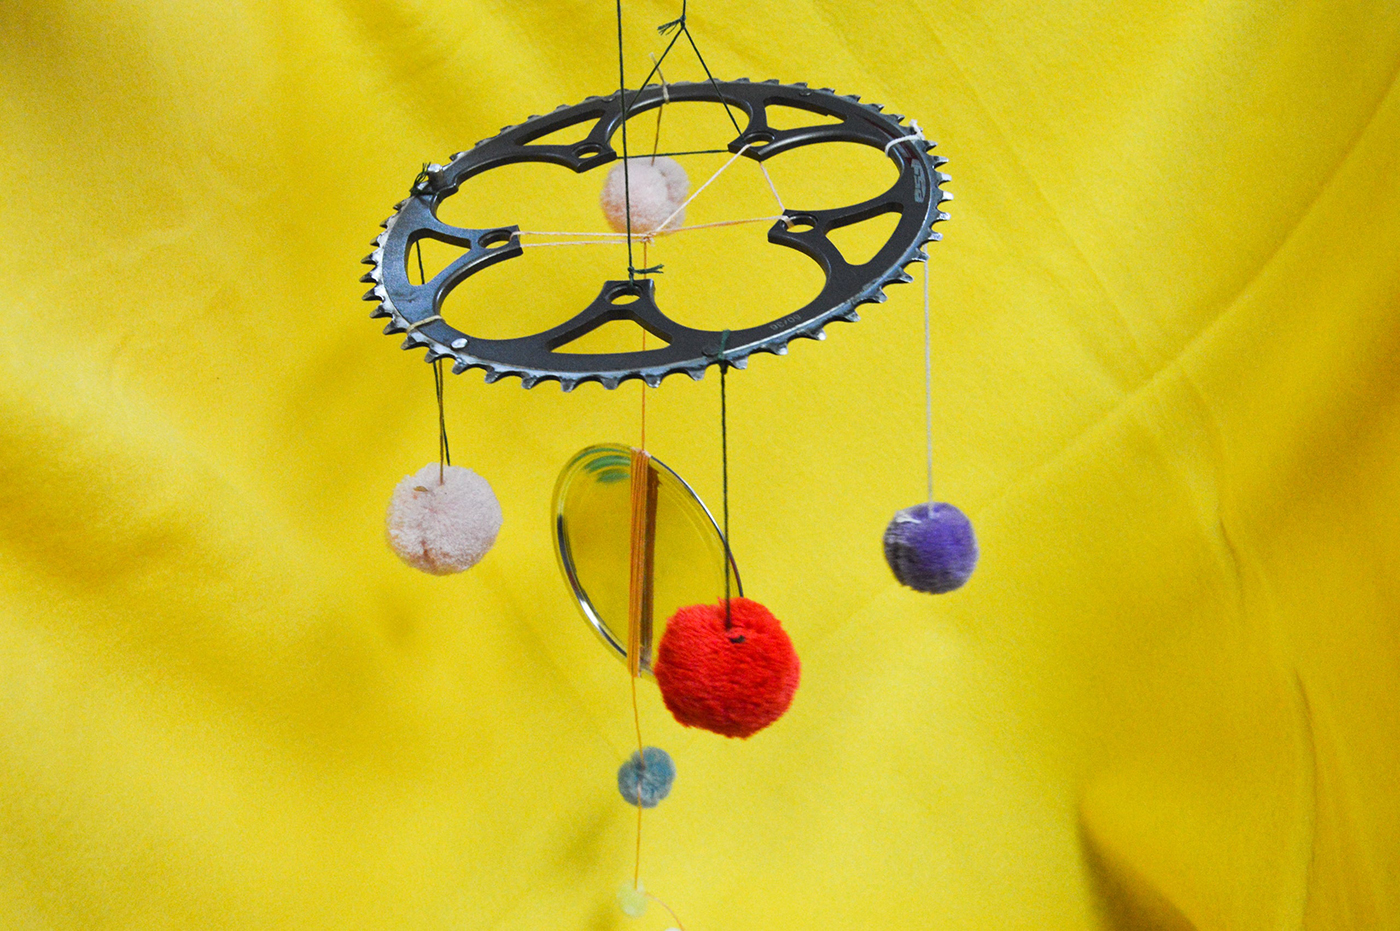 The Bike To The Future program is helping kids and adults express themselves through the artistic repurposing of bicycle parts.